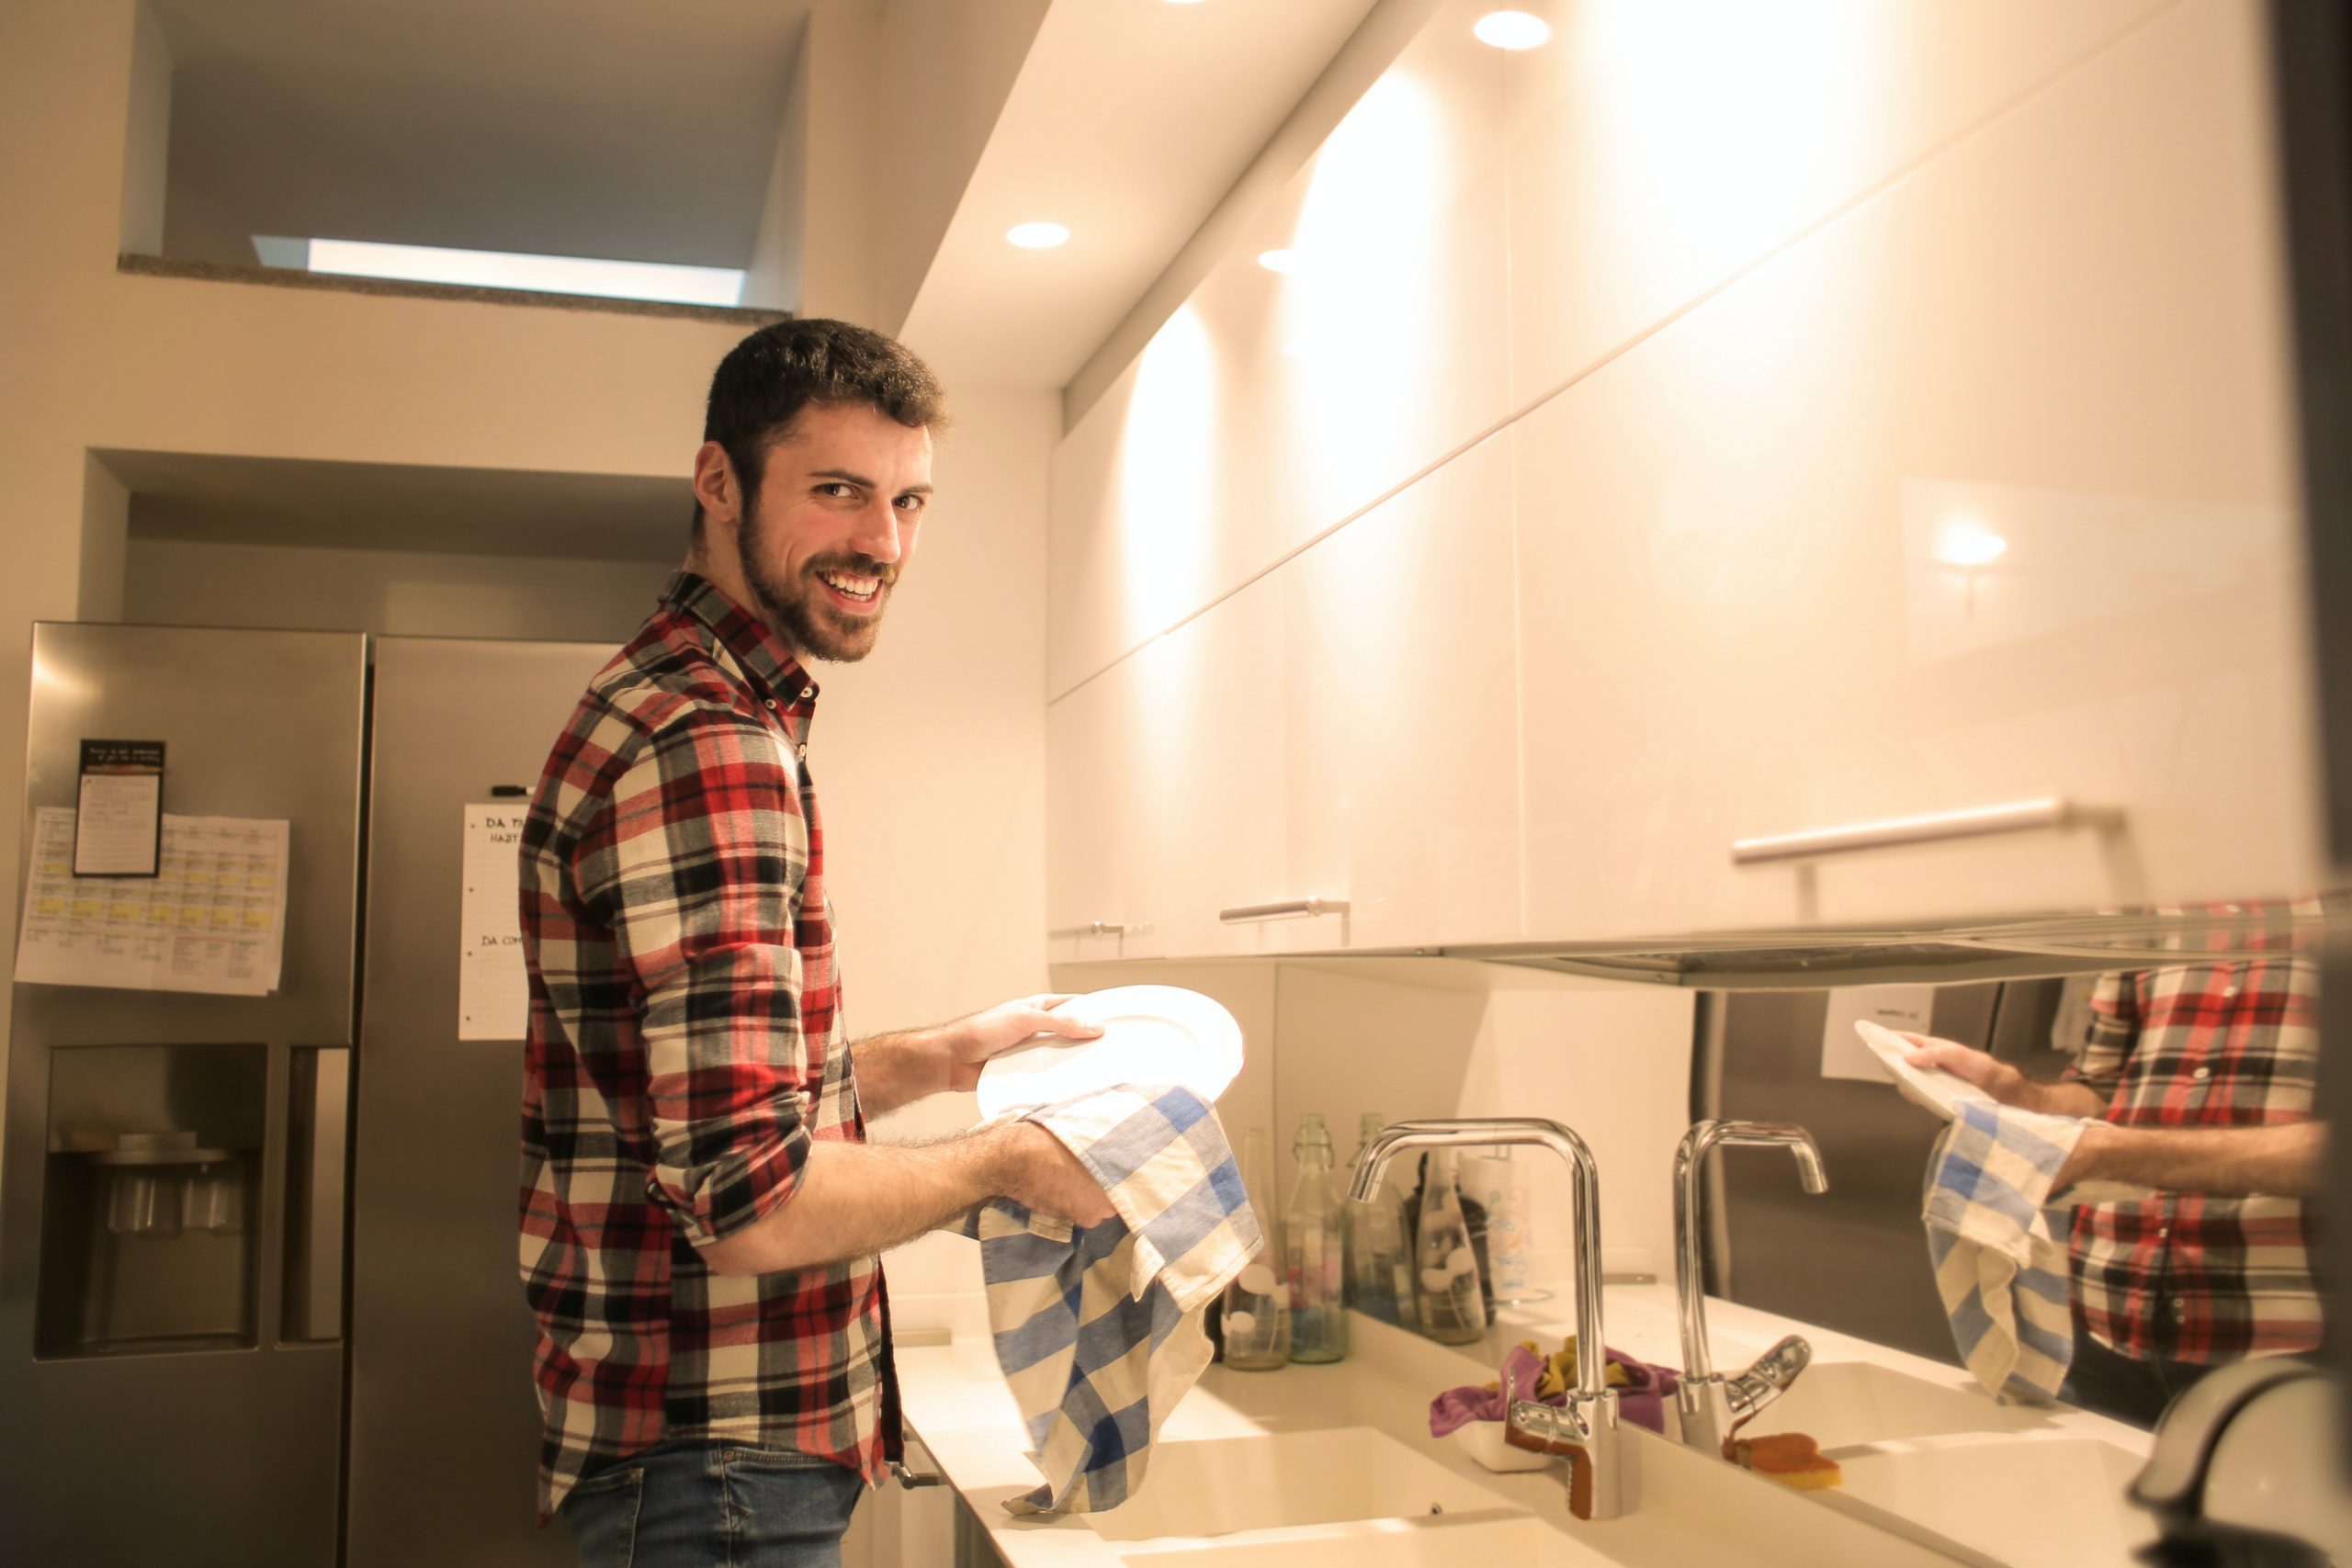 man wiping dishes in the kitchen